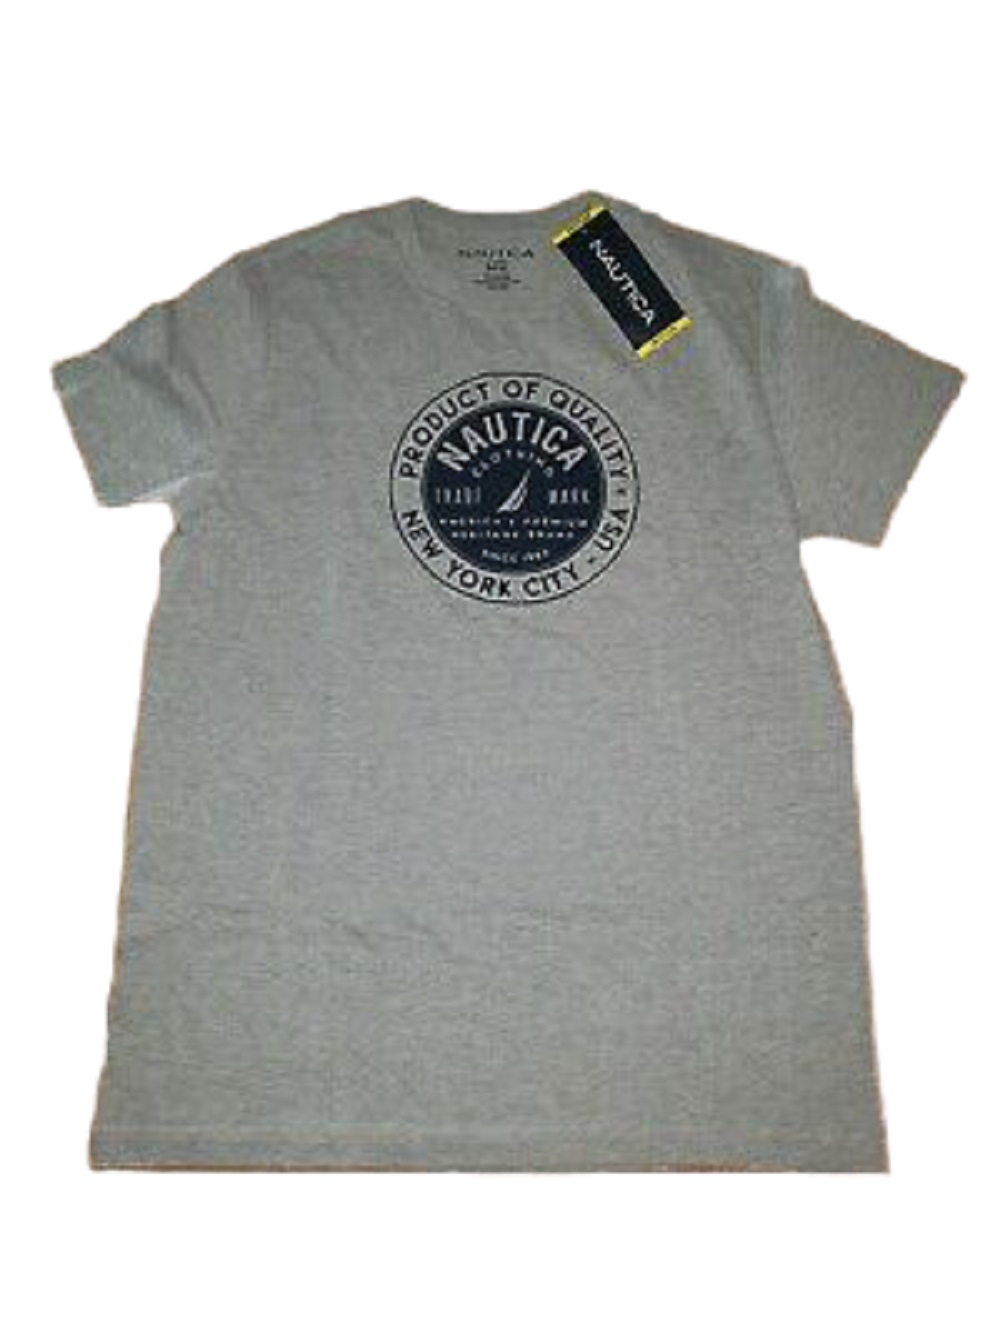 Nautica Mens Product of Quality New York Tshirt in Fog Heather, Size XLarge